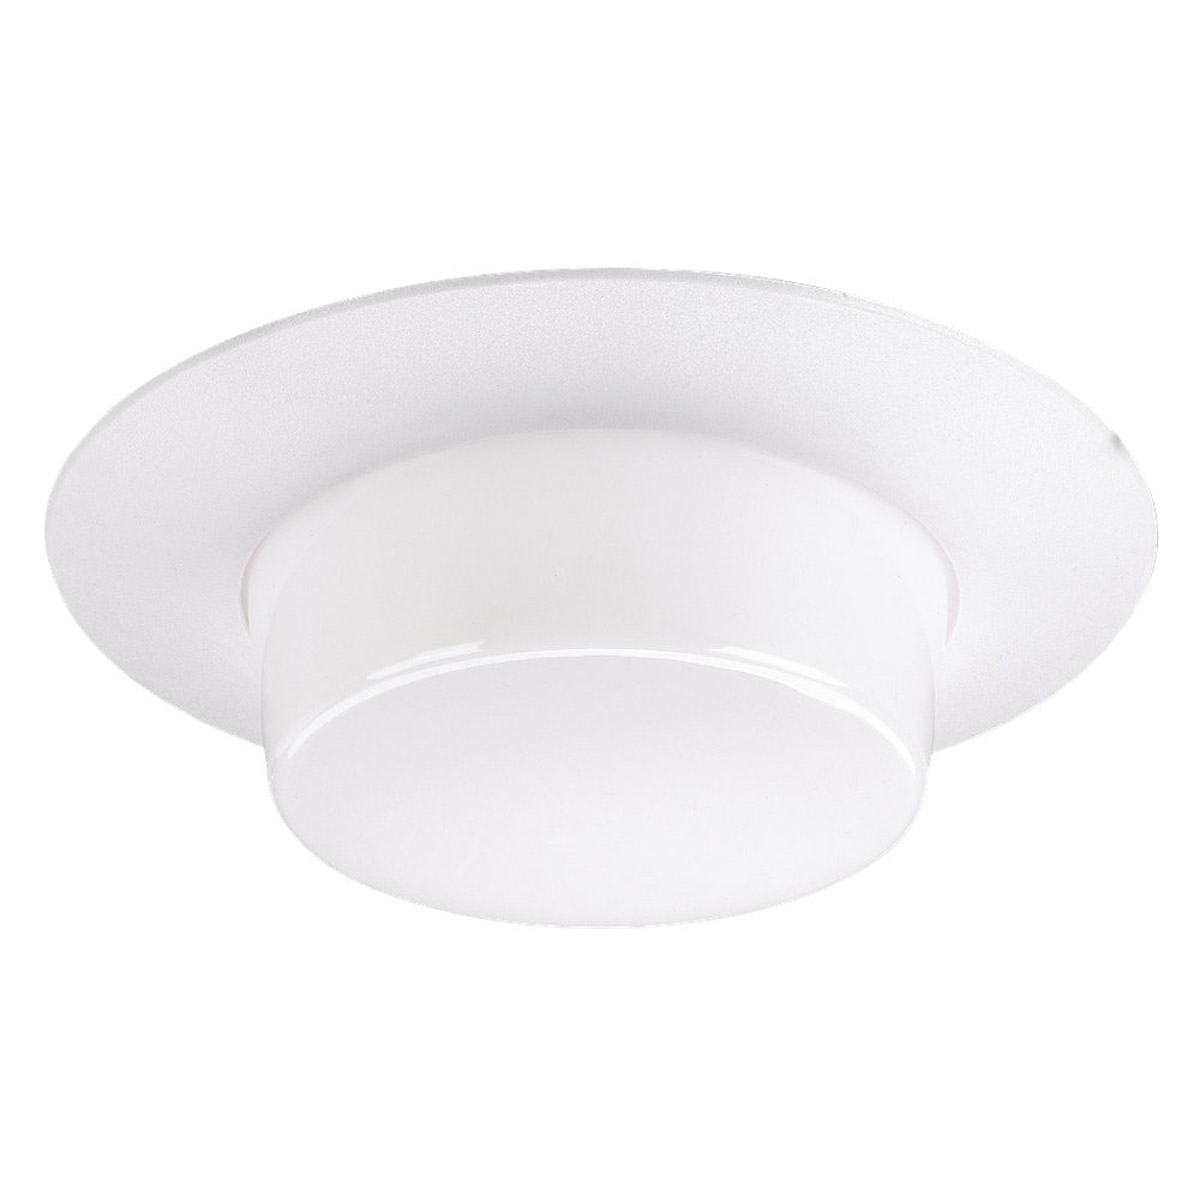 Sea Gull Lighting Signature Recessed Trim Only in White Plastic 1134-68 photo